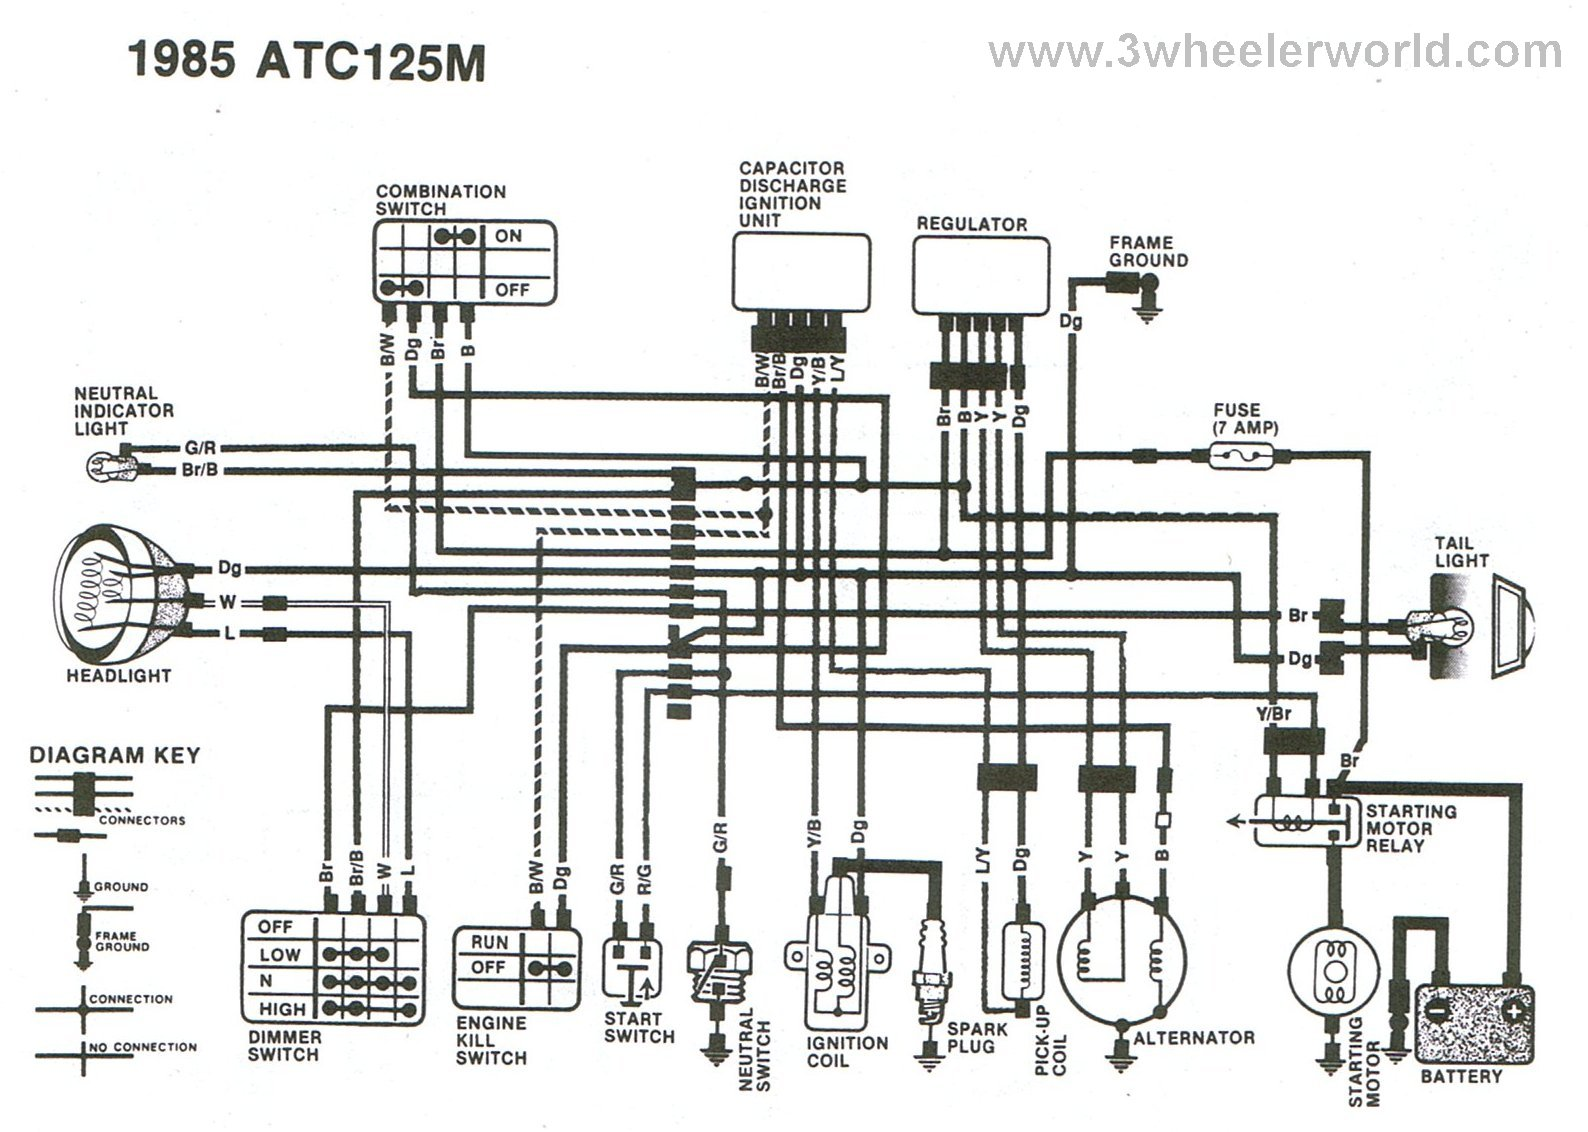 ATC125Mx85 3 wheeler world tech help honda wiring diagrams honda 125m wiring diagram at n-0.co